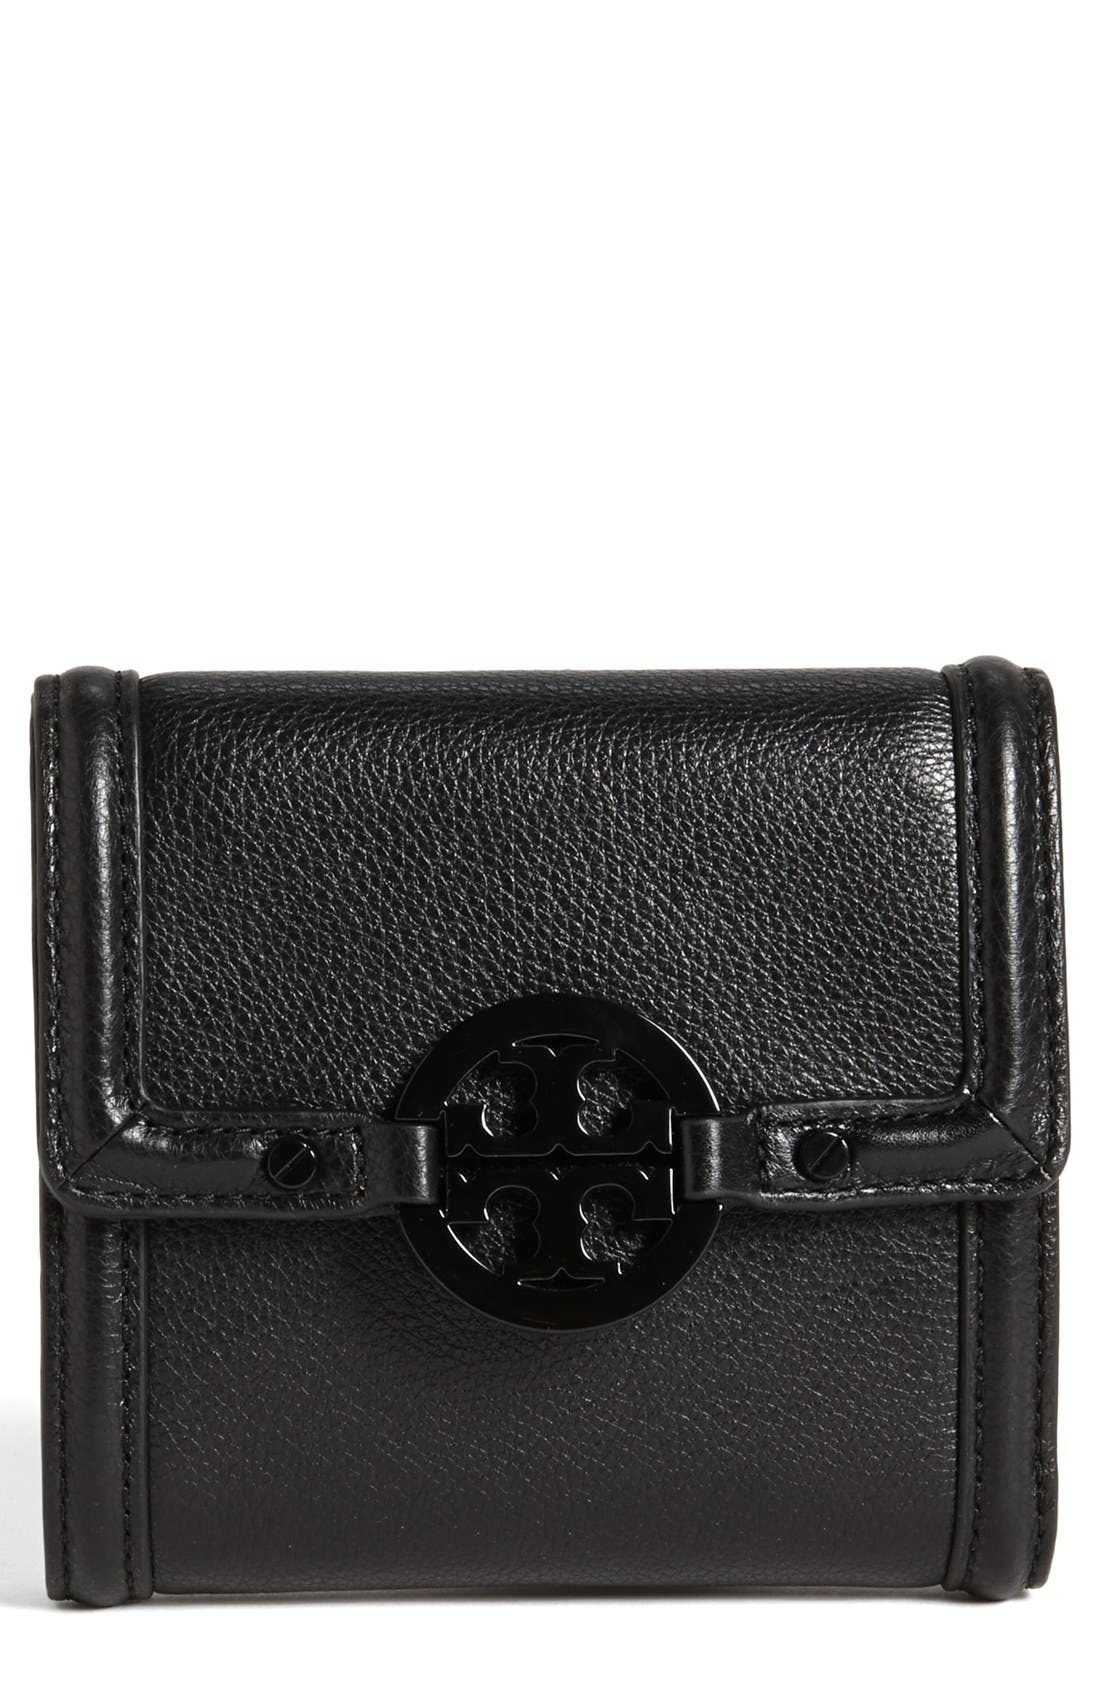 Main Image - Tory Burch 'Amanda' Trifold French Wallet